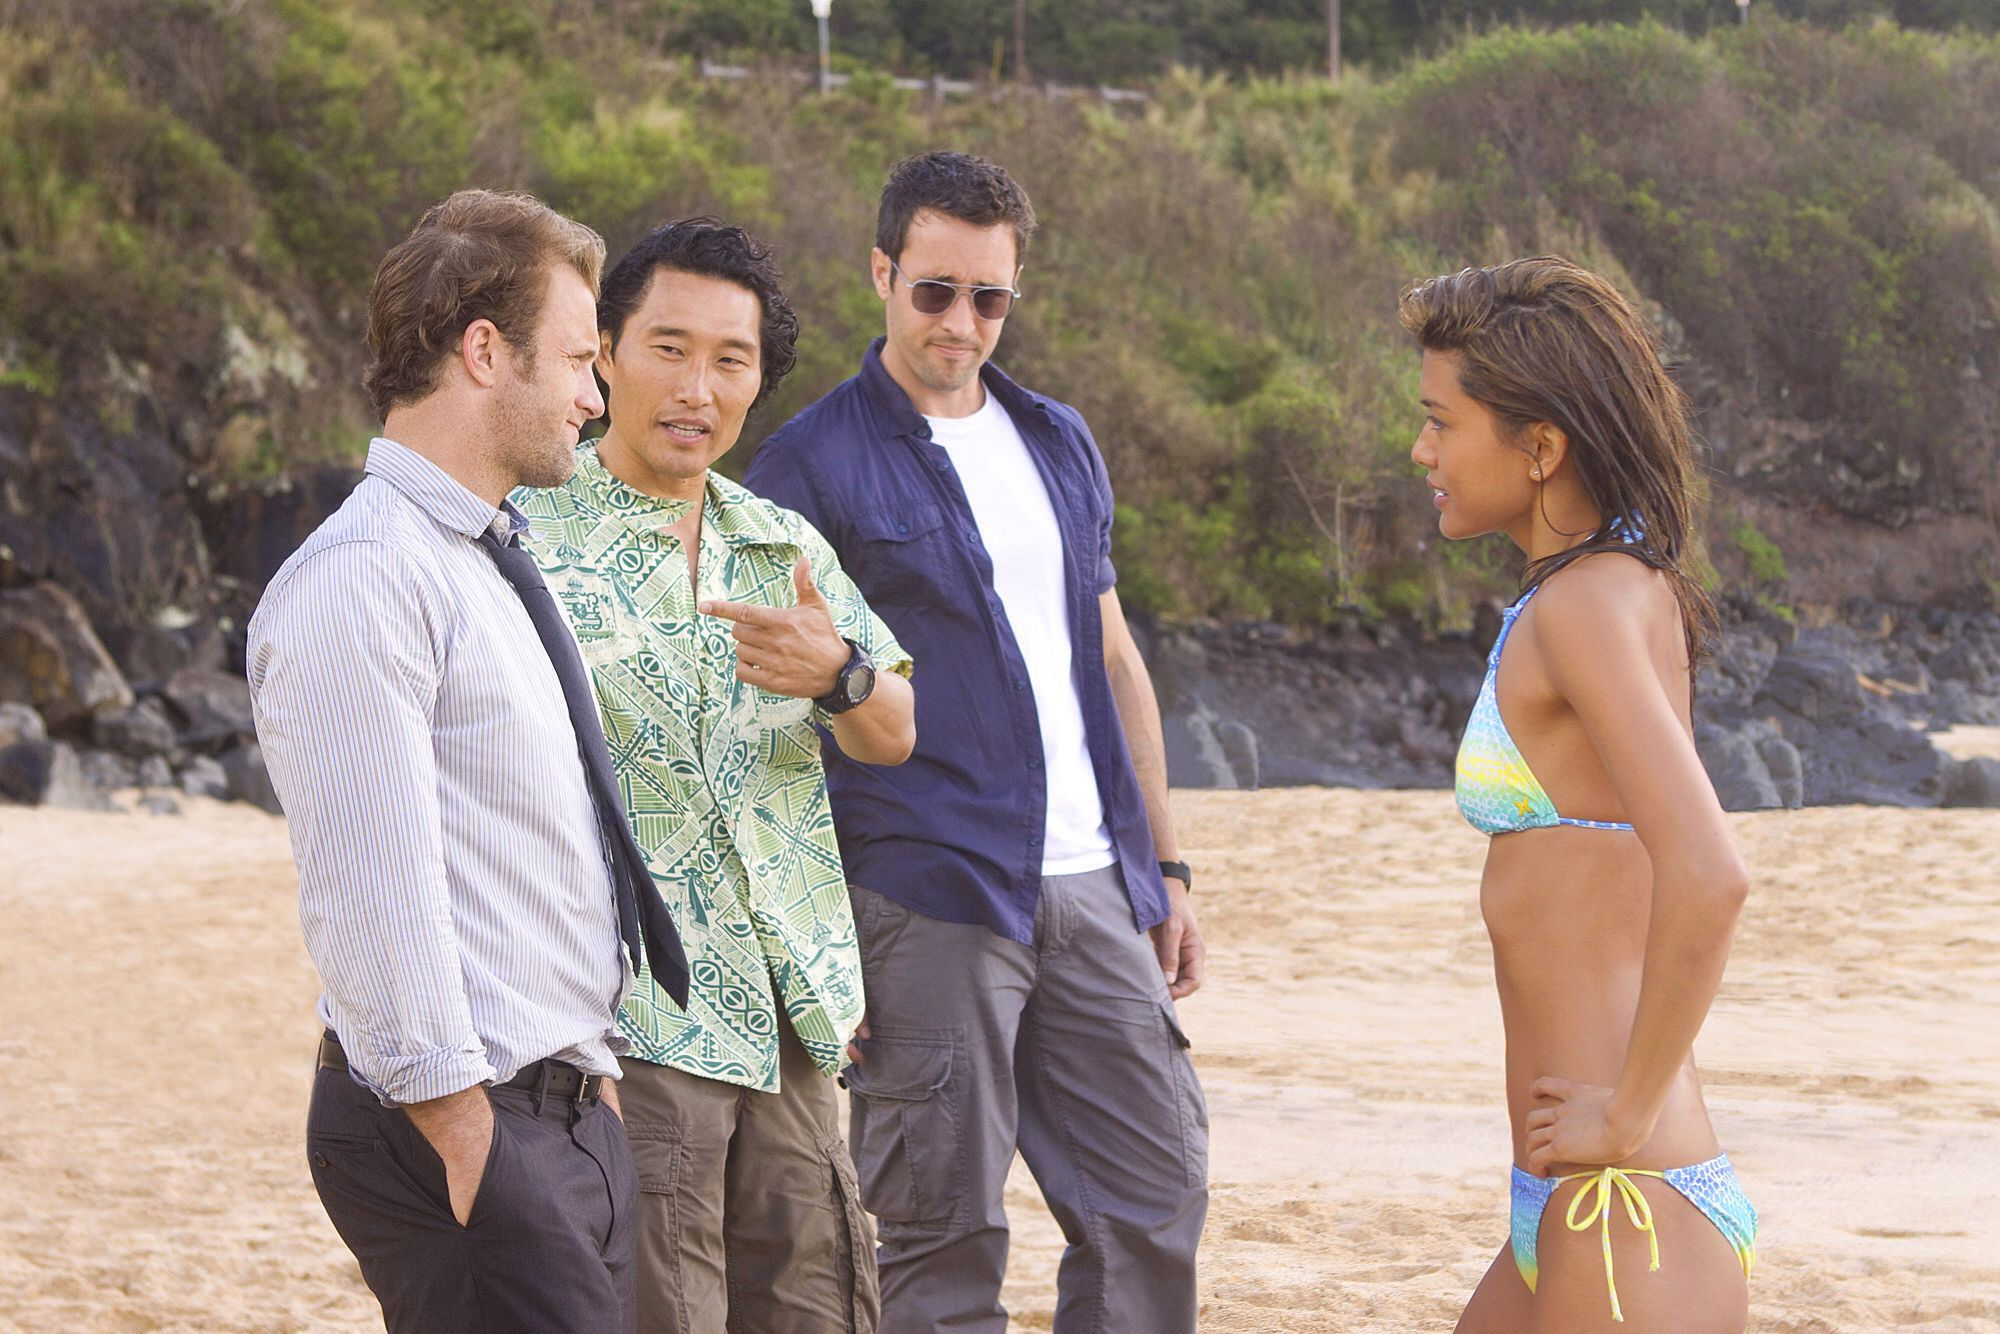 Did you that Paul from days of our lives was on last night's episode of Hawaii five o    I was like wow.